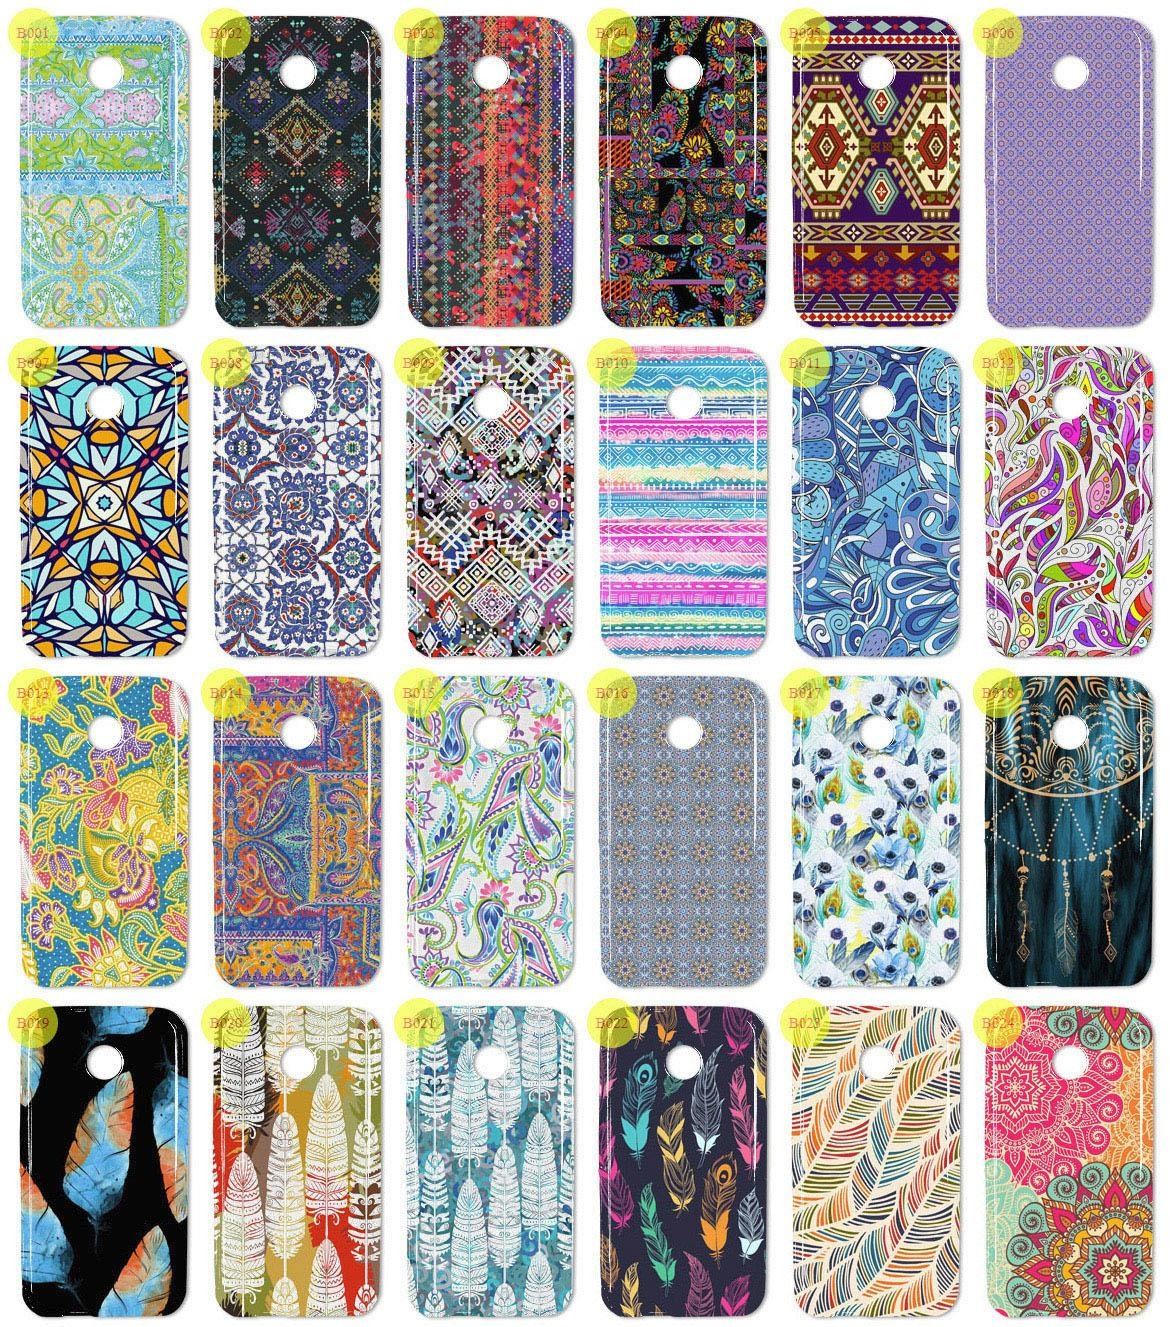 Back Case Print Cover 03mm Kreatui Artcase Vodafone Smart Mini 7 Flip Blackberry Aurora